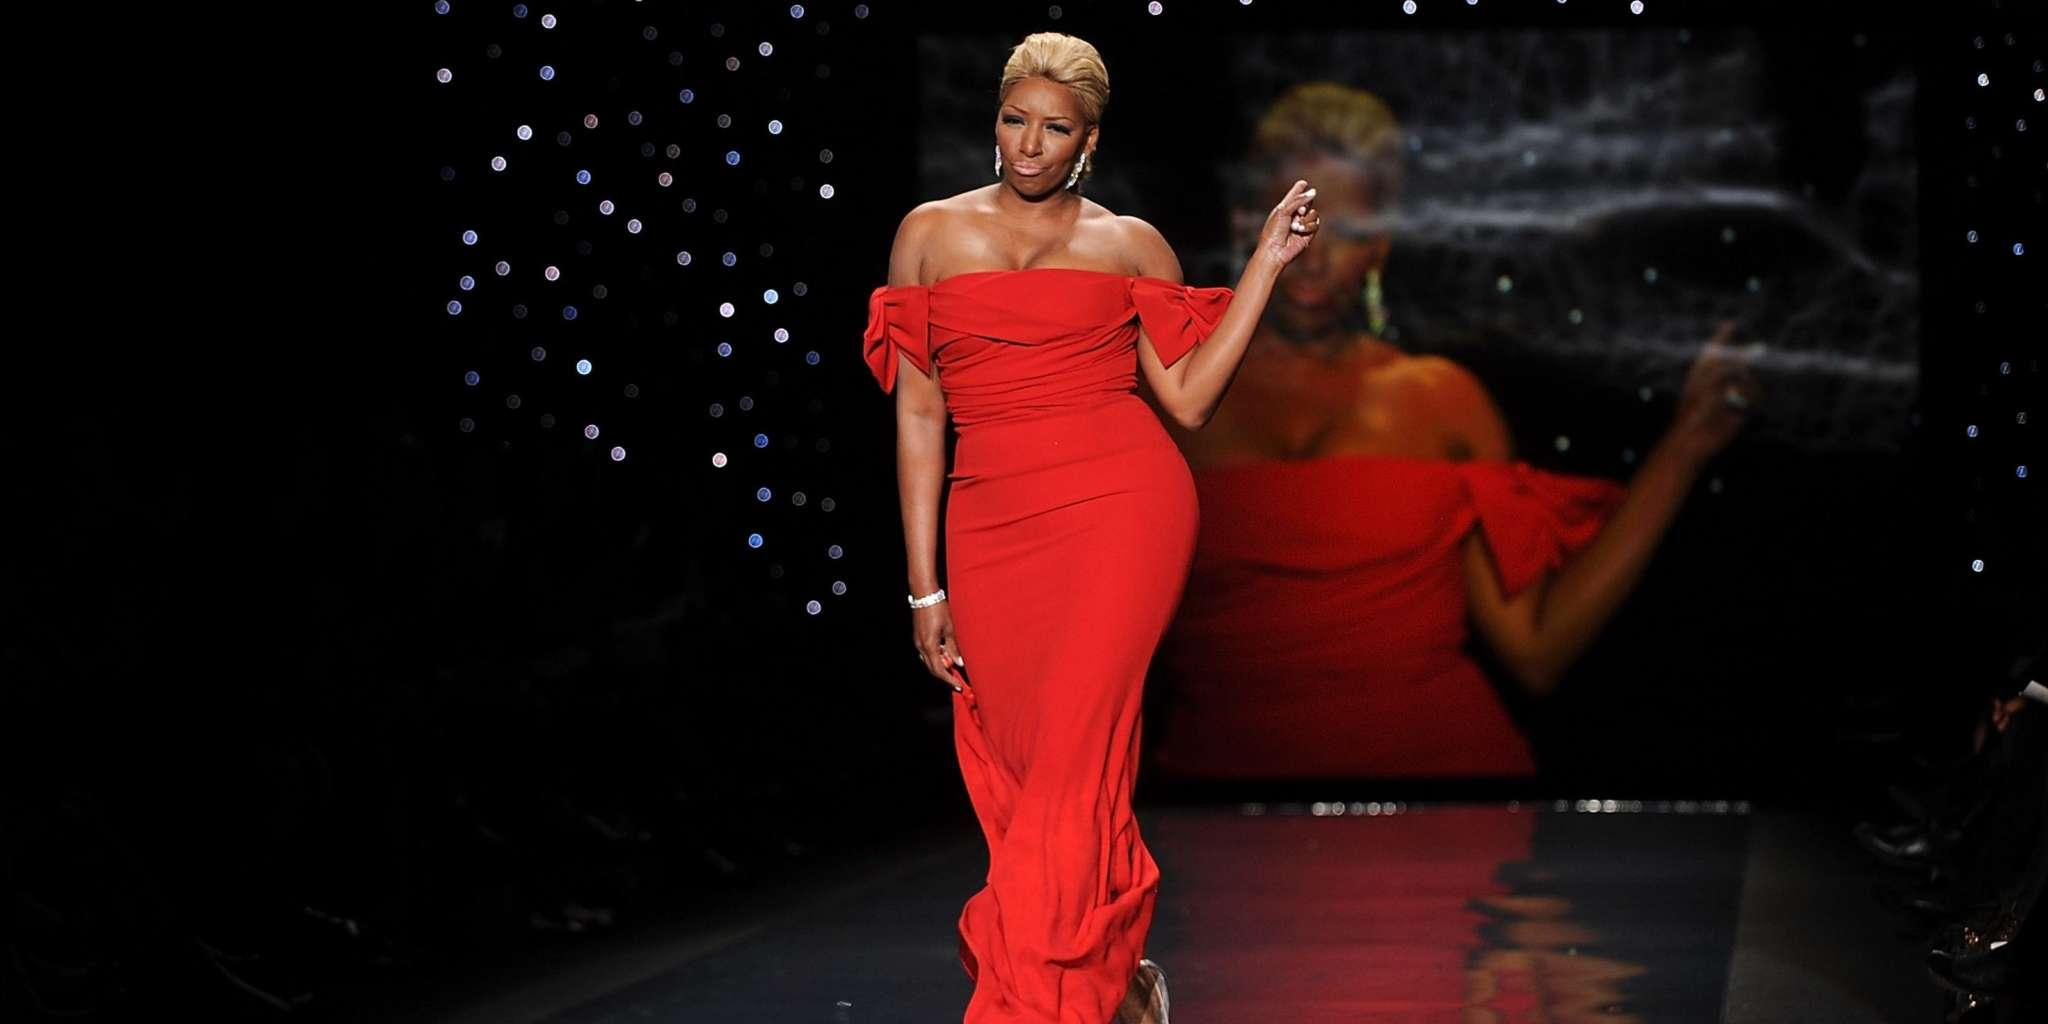 NeNe Leakes' Fans Freak Out The She Might Be With Another Man After Her Latest Post